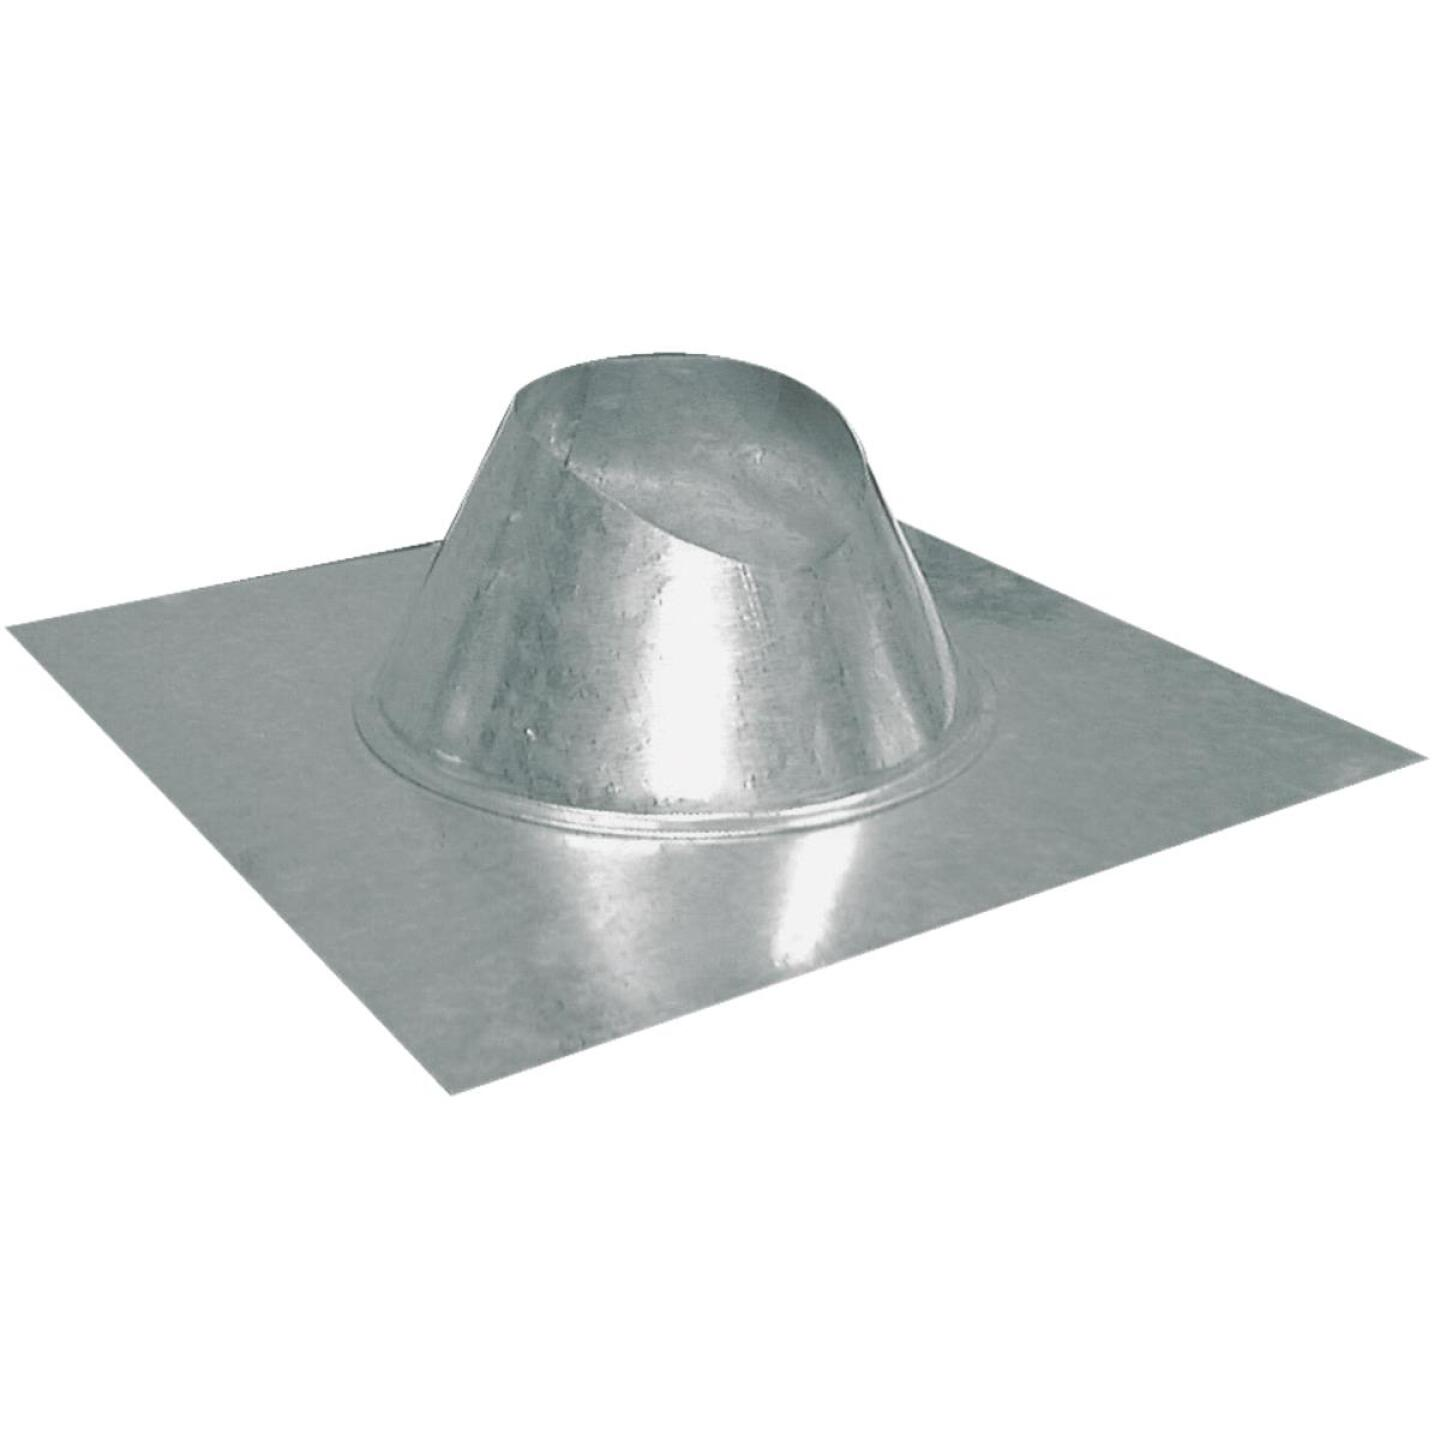 Imperial 3 In. Galvanized Rainproof Roof Pipe Flashing Image 1